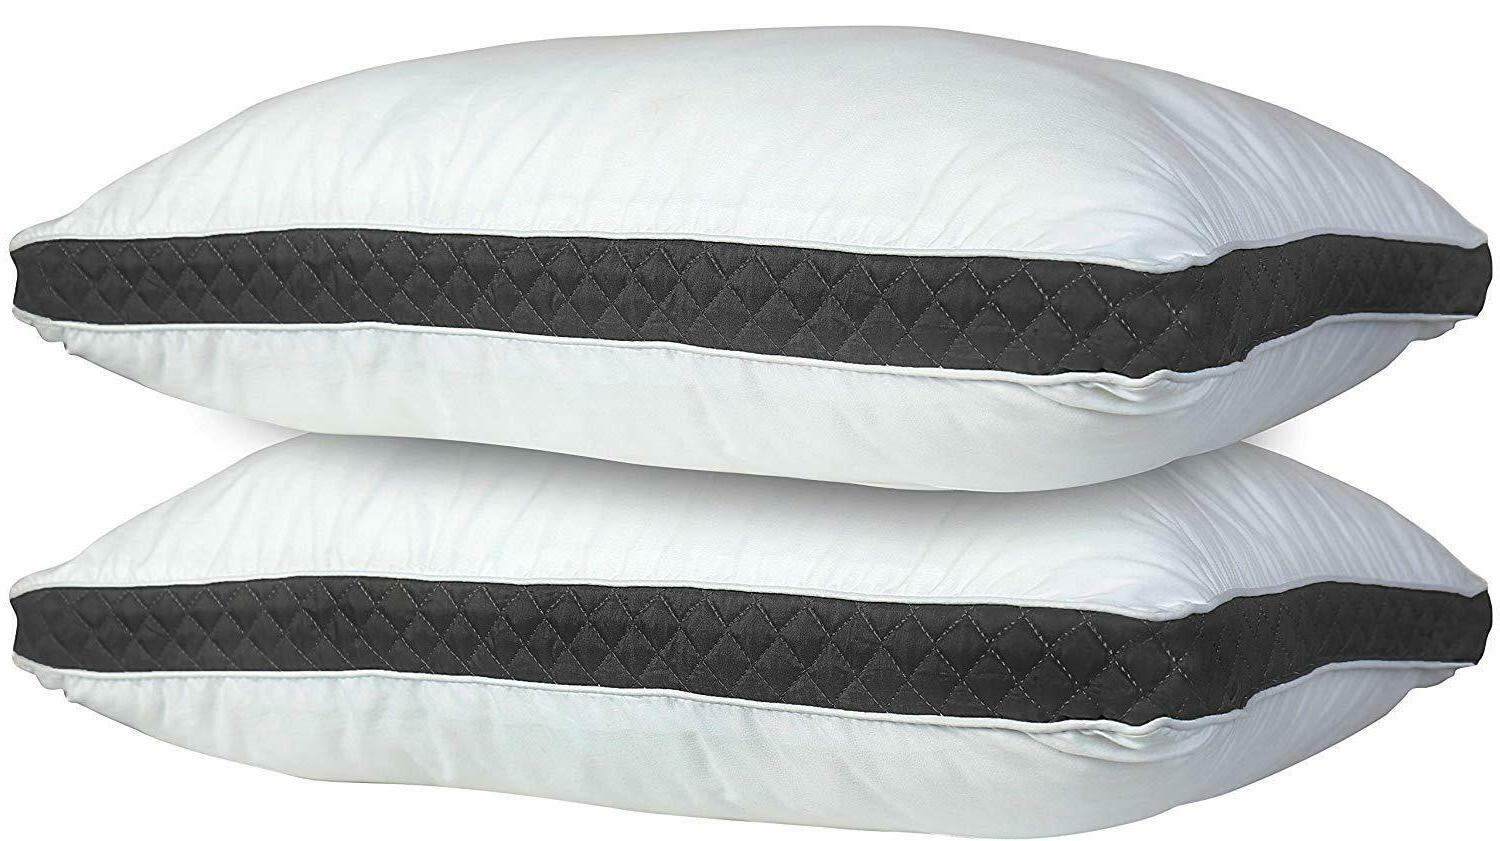 2 Pillows Luxury Ultra Soft Gusseted Bed Pillows and Back